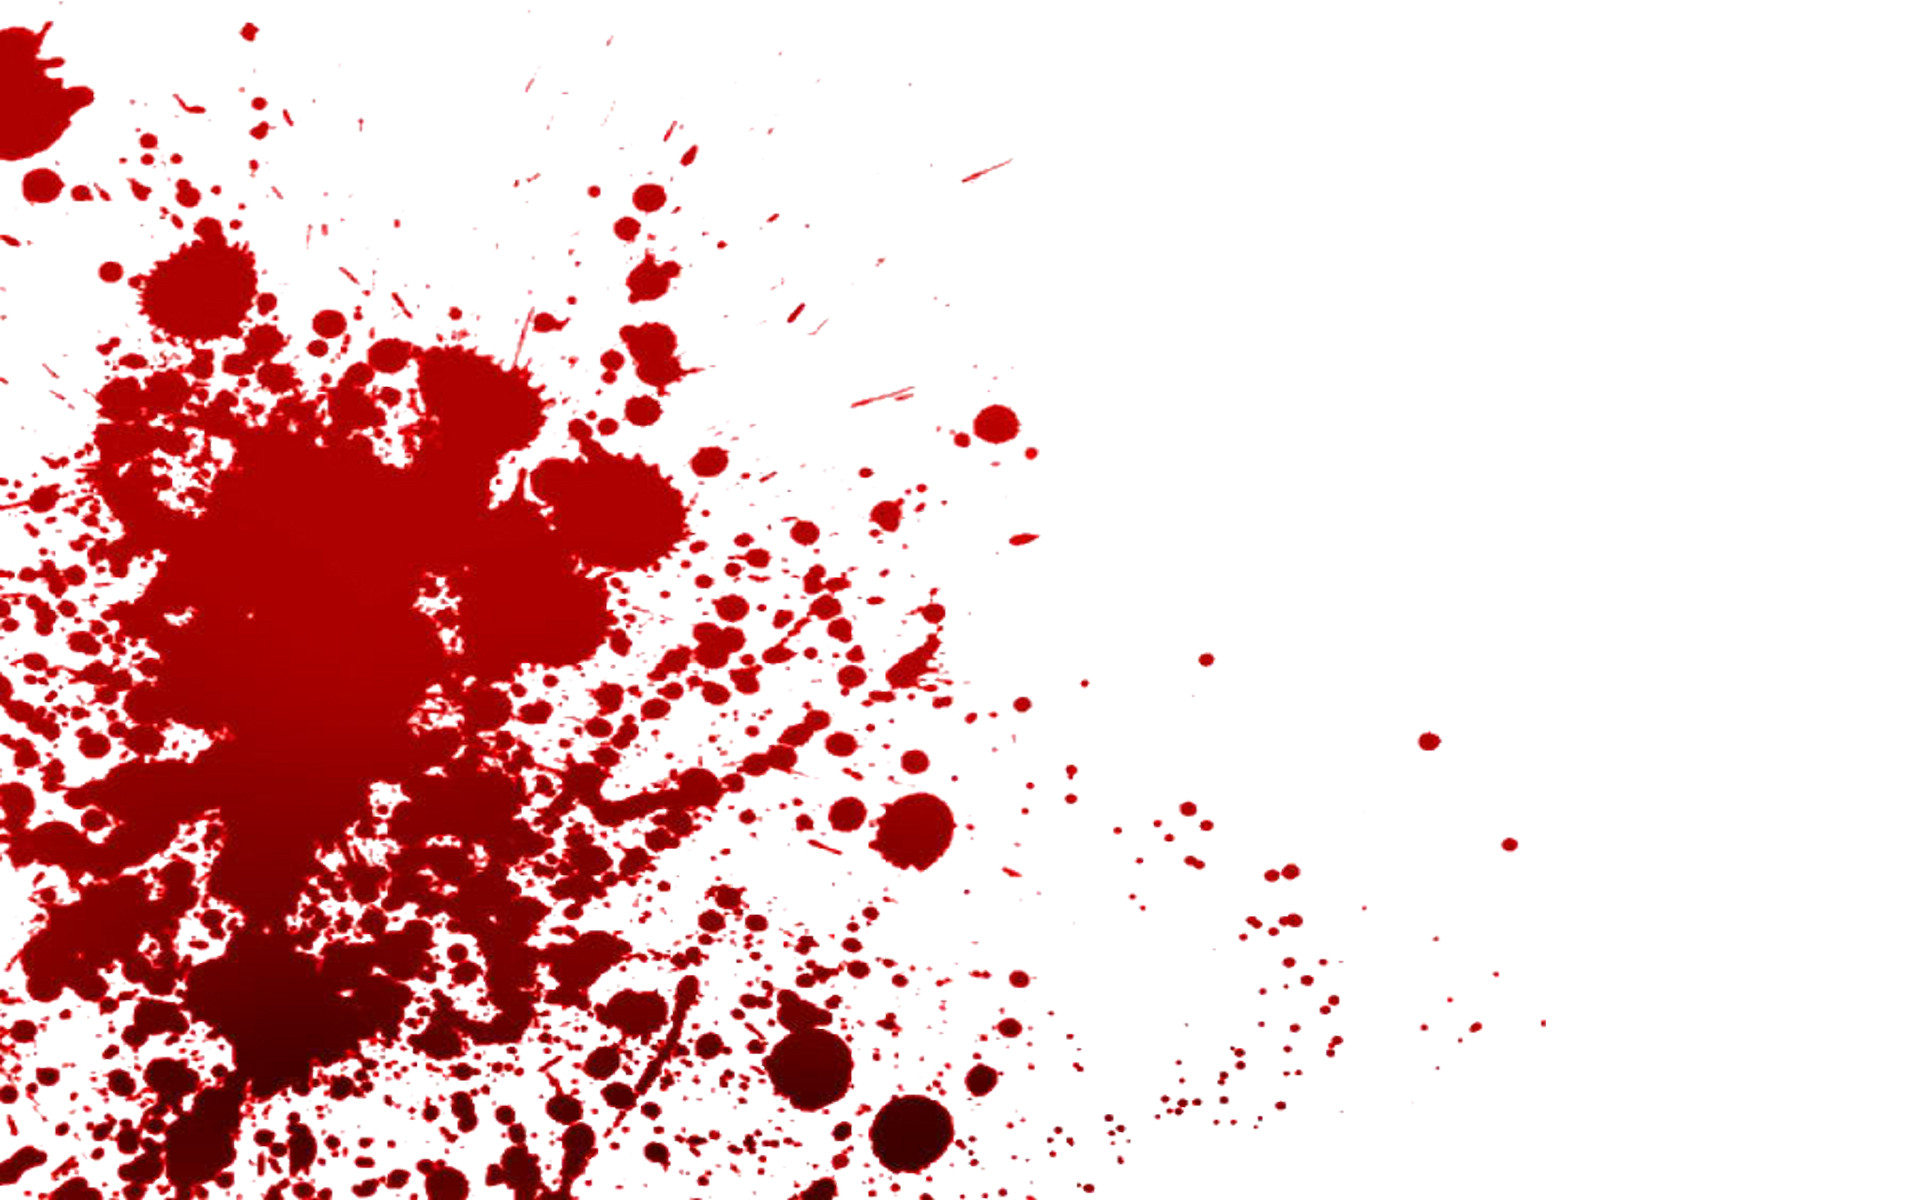 Love In Blood Wallpaper : Blood Splat - cliparts.co